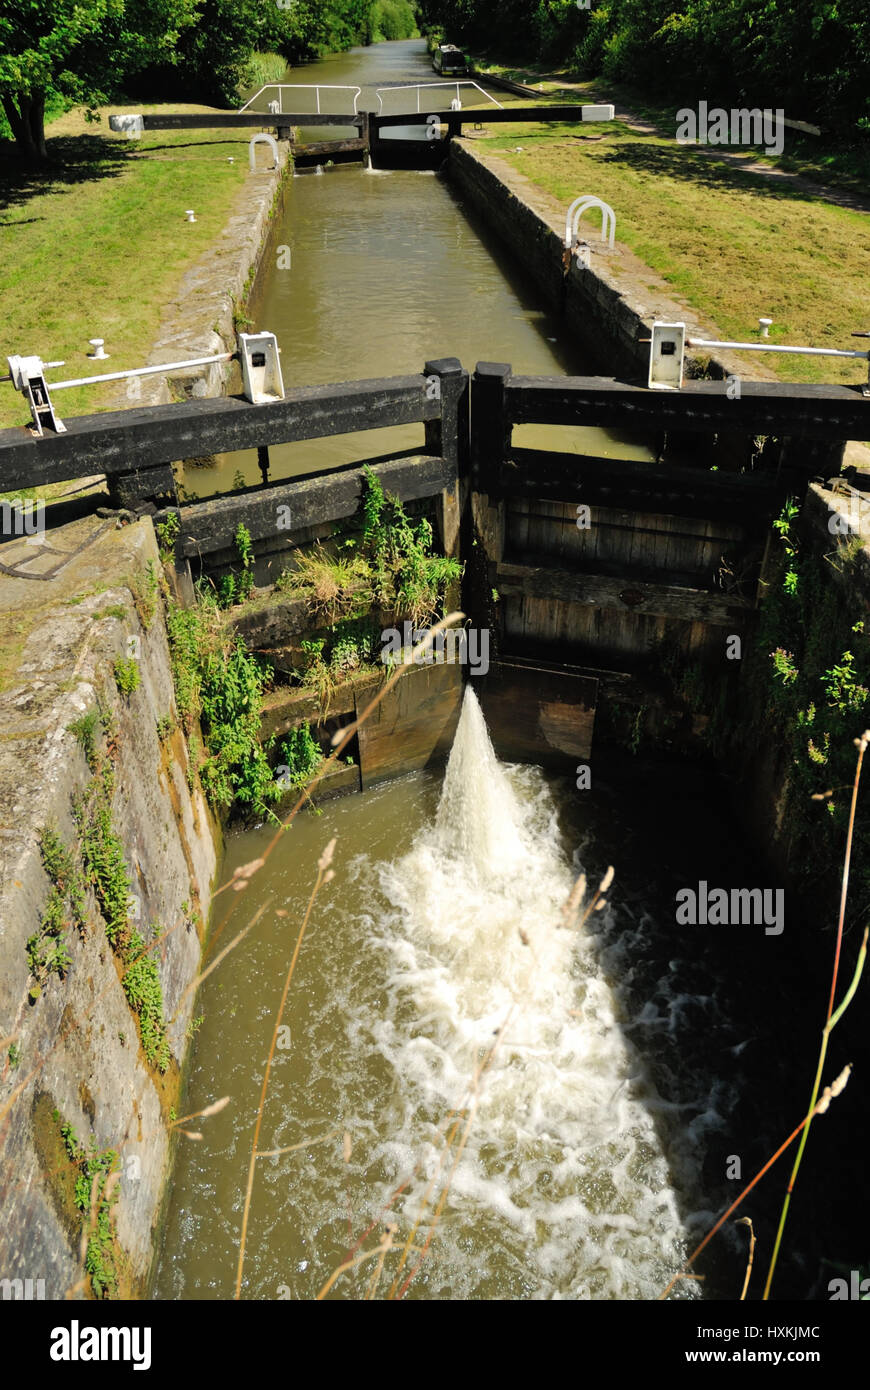 Heathy Close lock, Kennet and Avon canal. - Stock Image